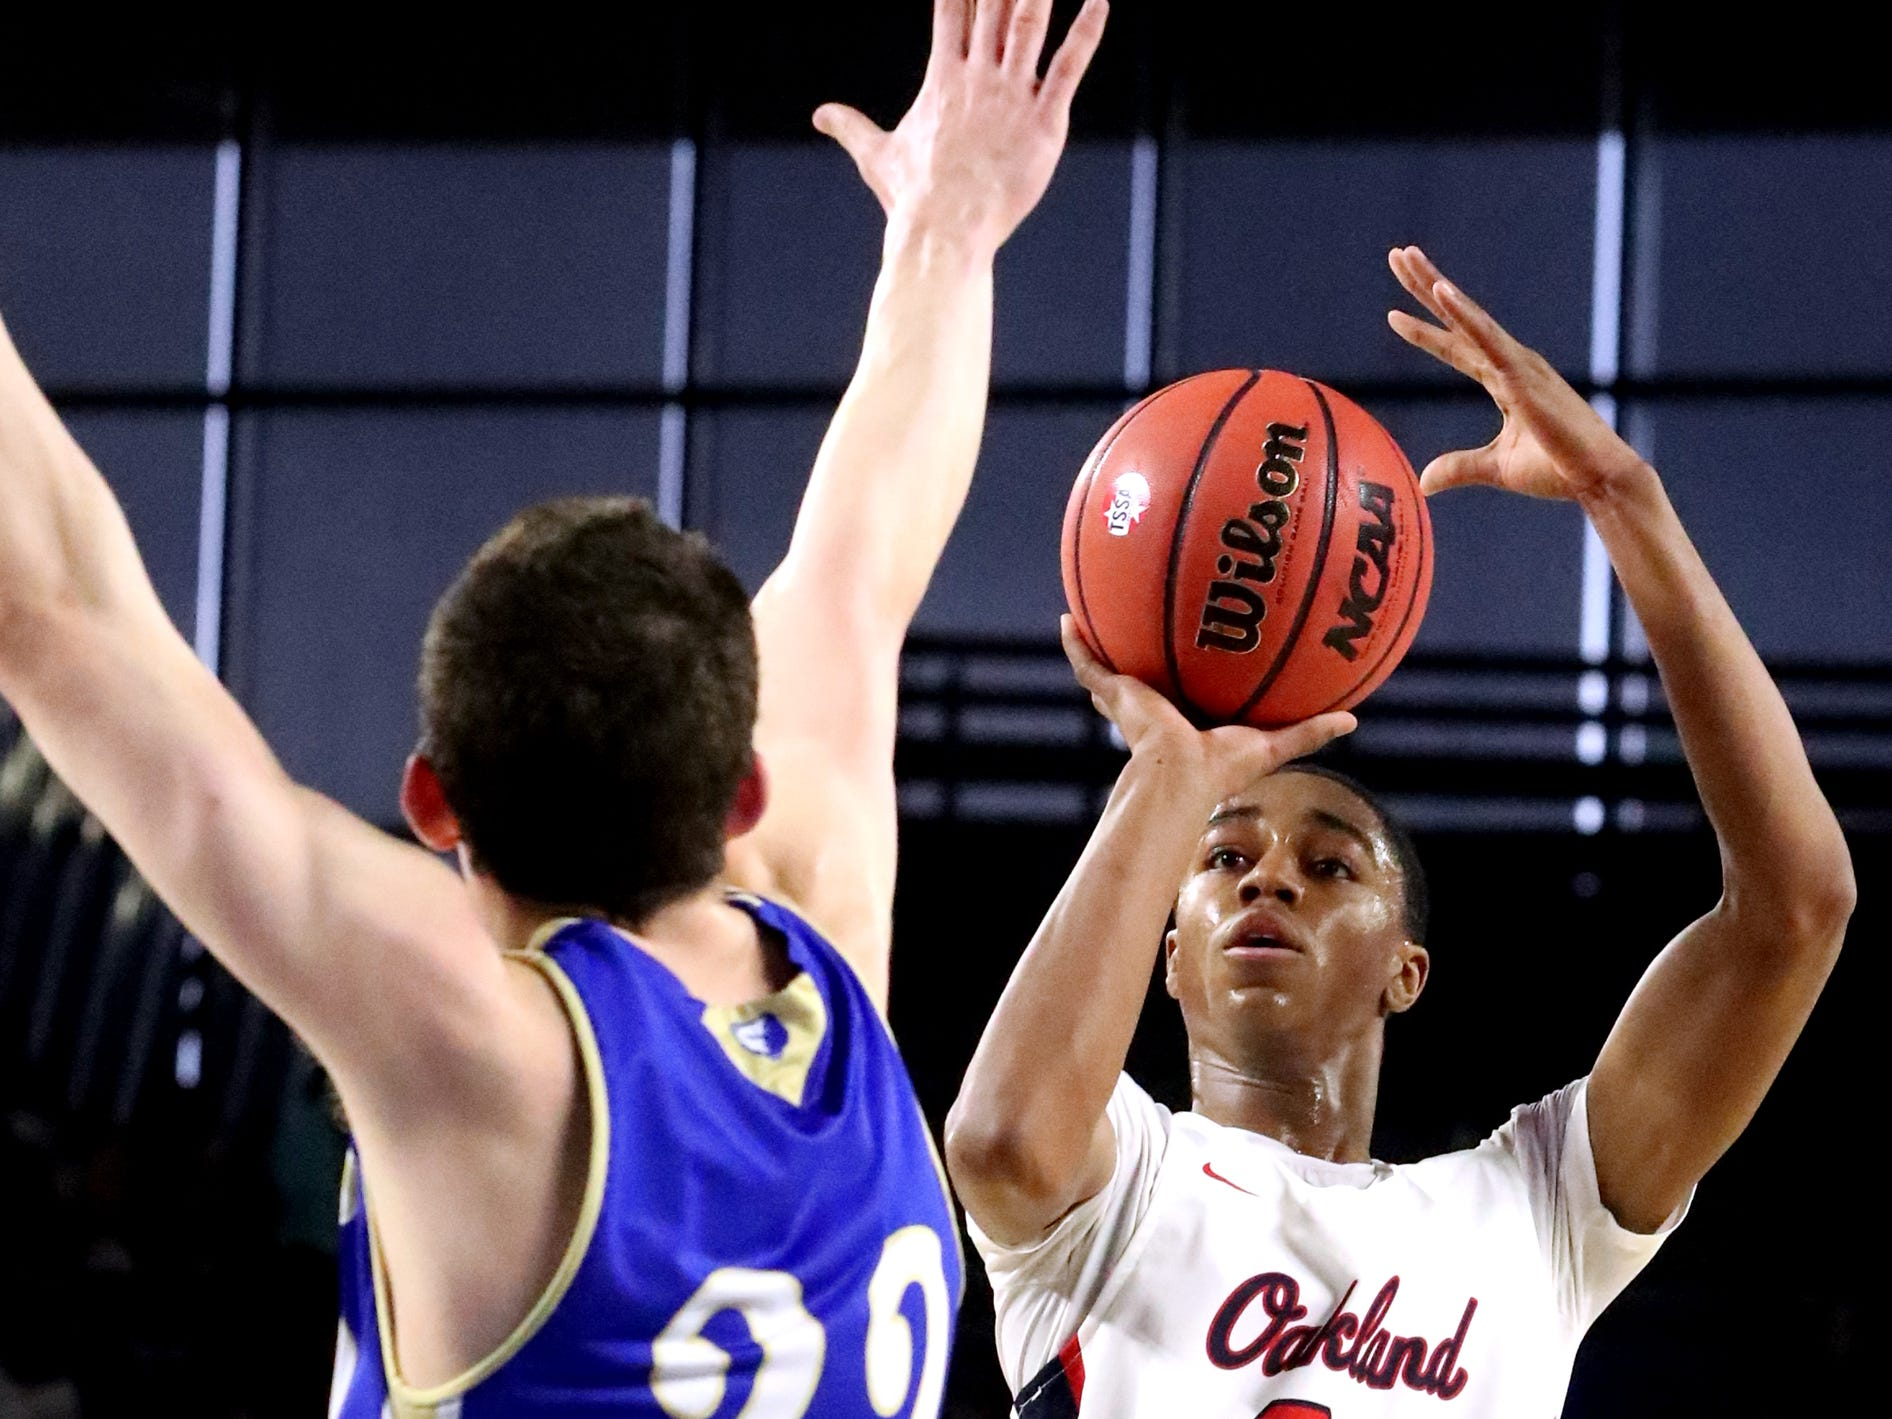 Oakland's Dorian Anderson (23) shoots the ball as Brentwood's Harry Lackey (22) guards him during the quarterfinal round of the TSSAA Class AAA Boys State Tournament, on Thursday, March 14, 2019, at Murphy Center in Murfreesboro, Tenn.